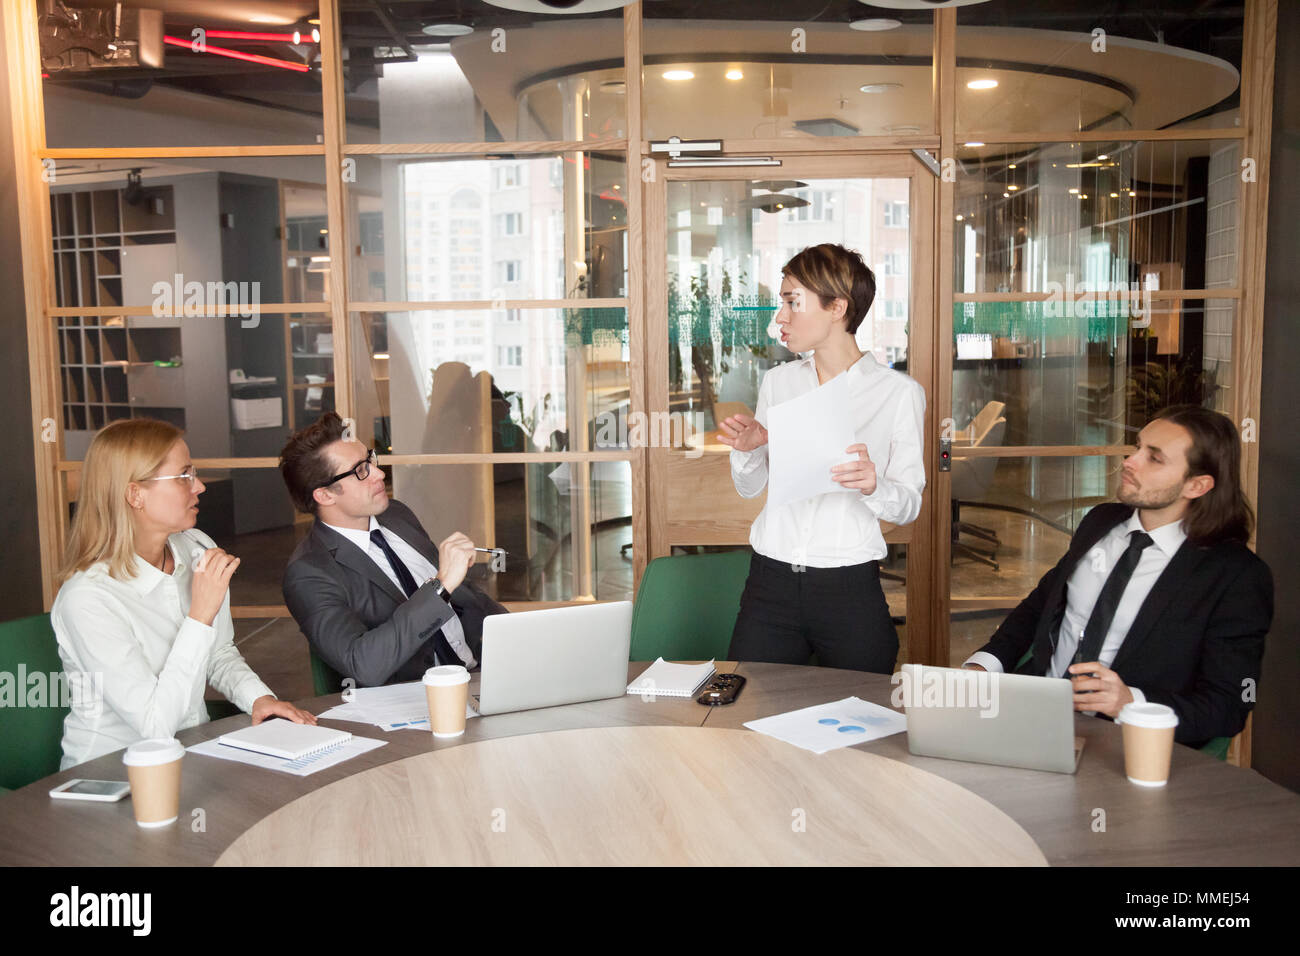 Businesswoman presenting document or speaking about business res - Stock Image